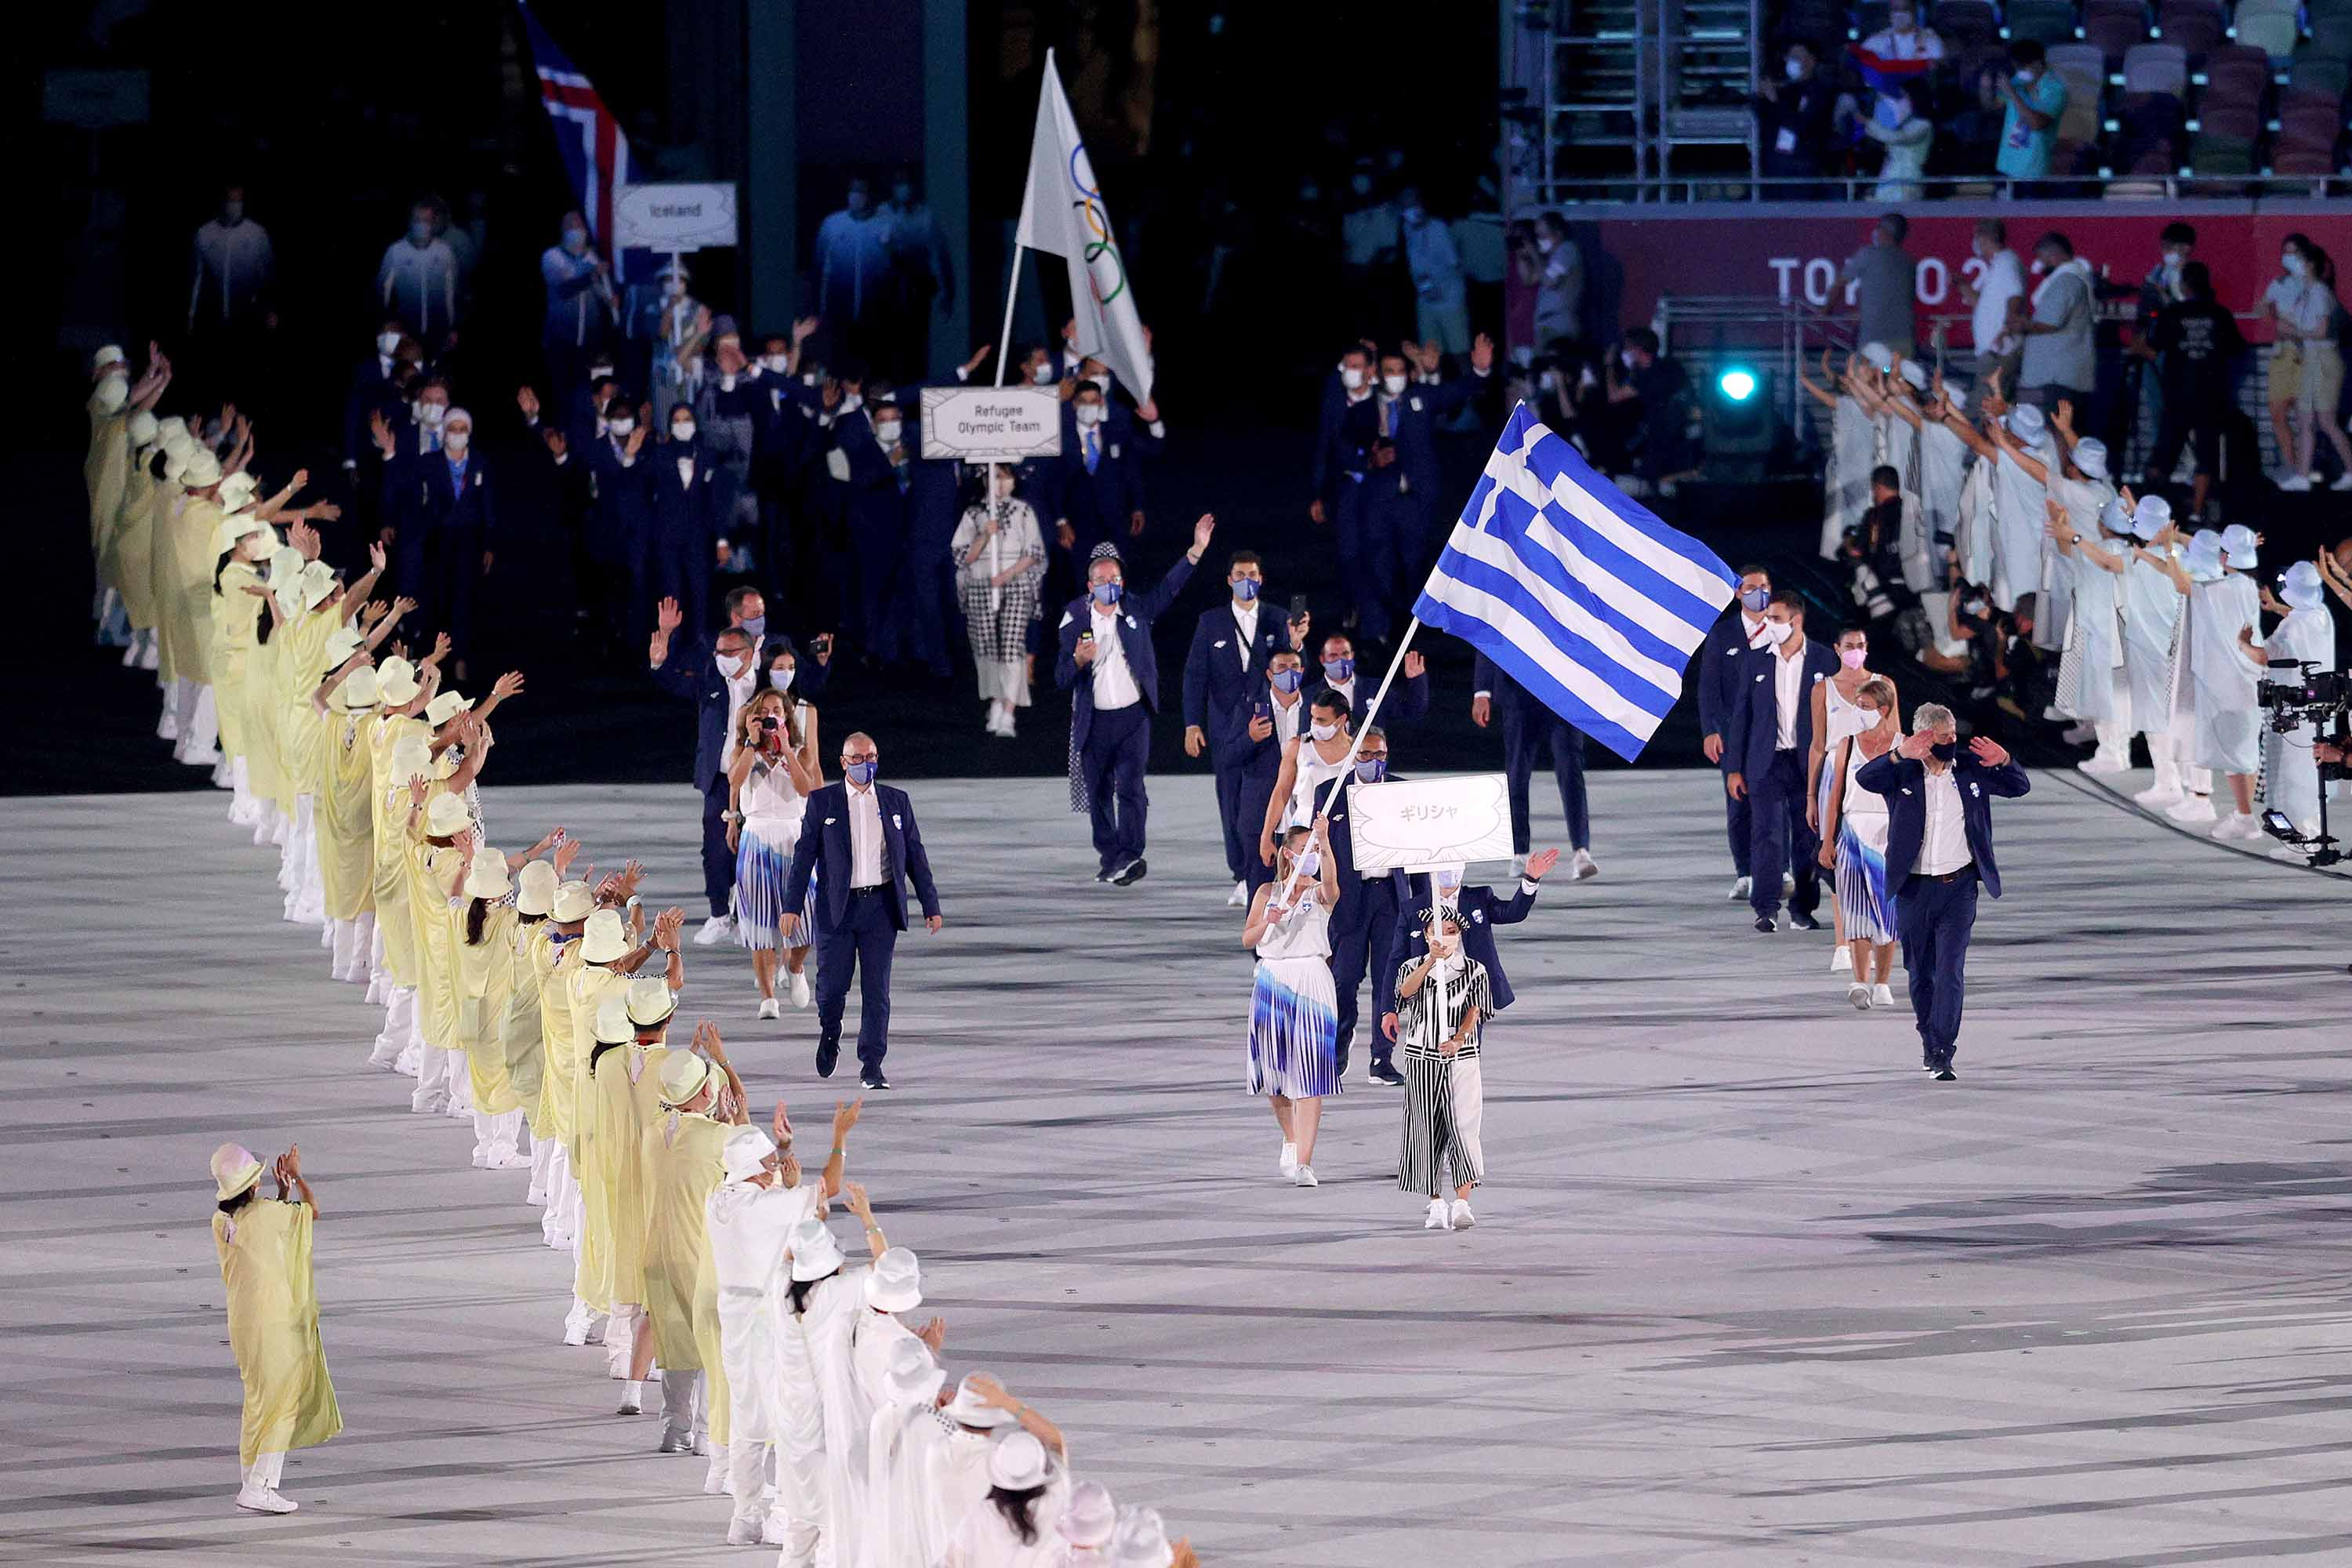 OKYO, JAPAN - JULY 23: Flag bearers Anna Korakaki and Eleftherios Petrounias of Team Greece lead their teammates out during the Opening Ceremony of the Tokyo 2020 Olympic Games at Olympic Stadium on July 23, 2021 in Tokyo, Japan. (Photo by Patrick Smith/Getty Images)